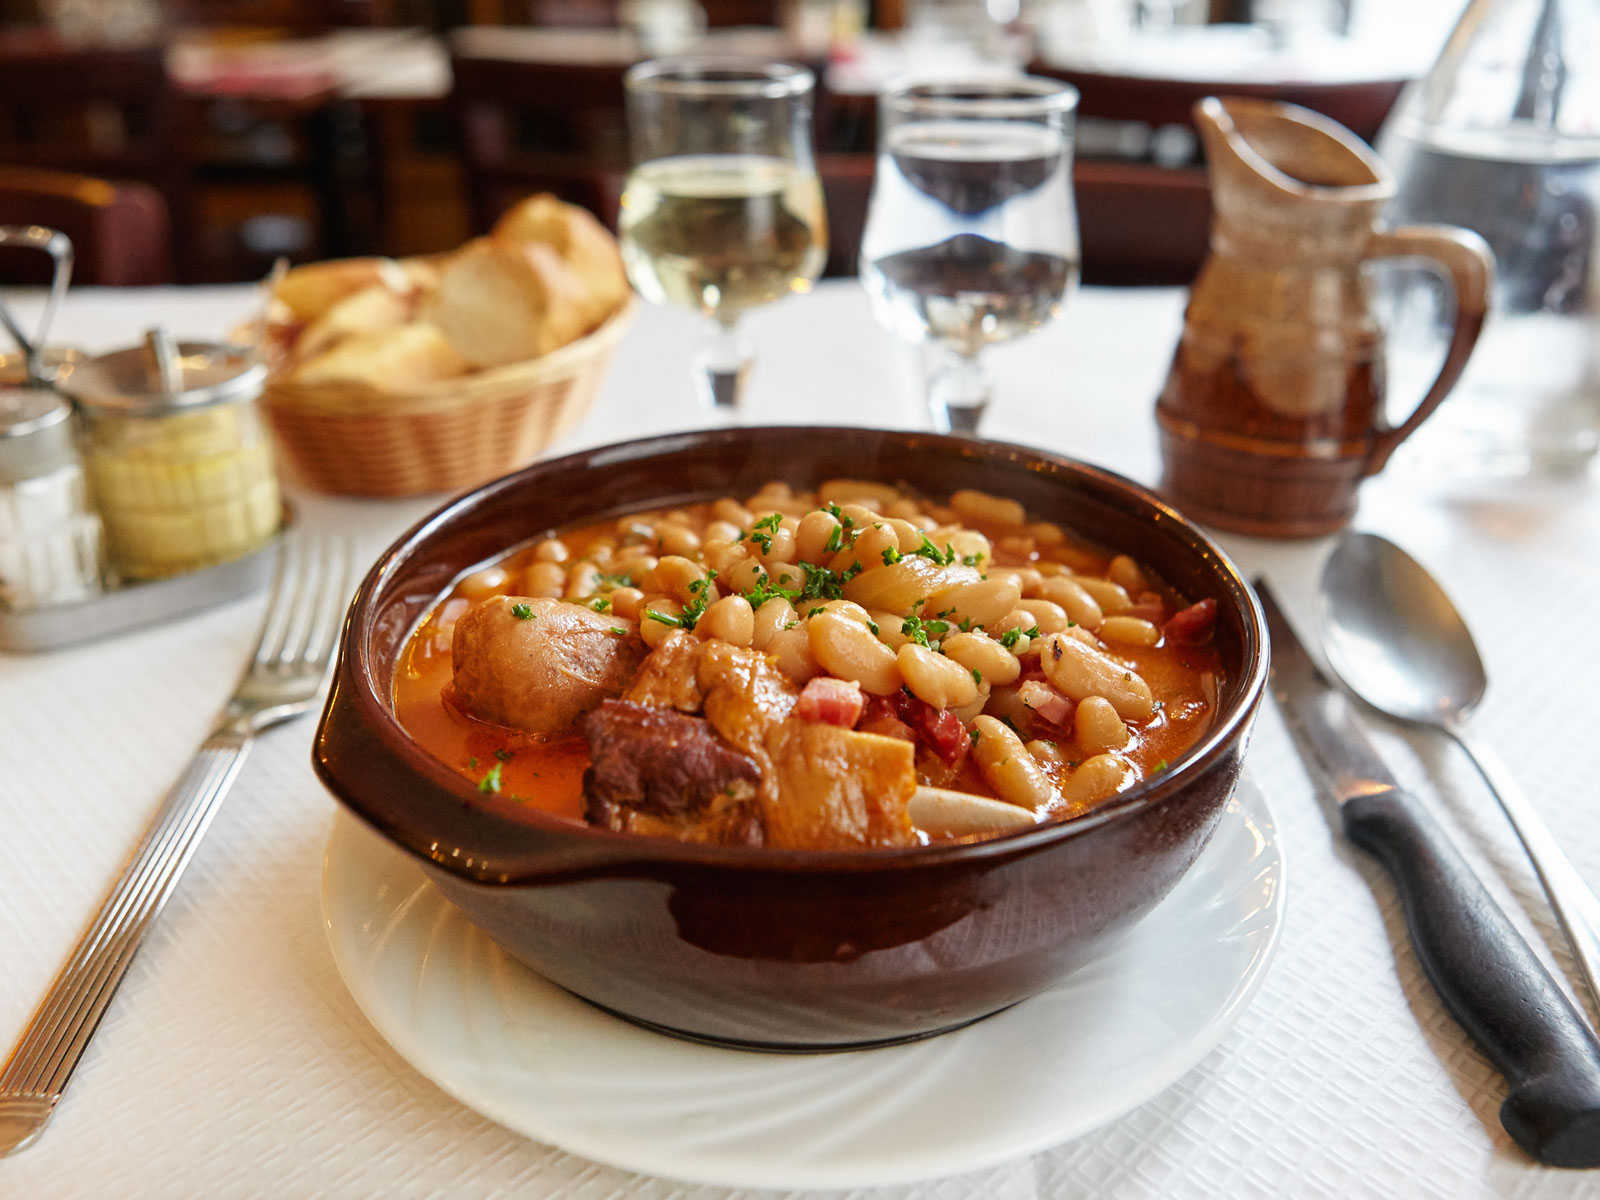 What I Learned From Eating 10 Versions of Cassoulet in One Night